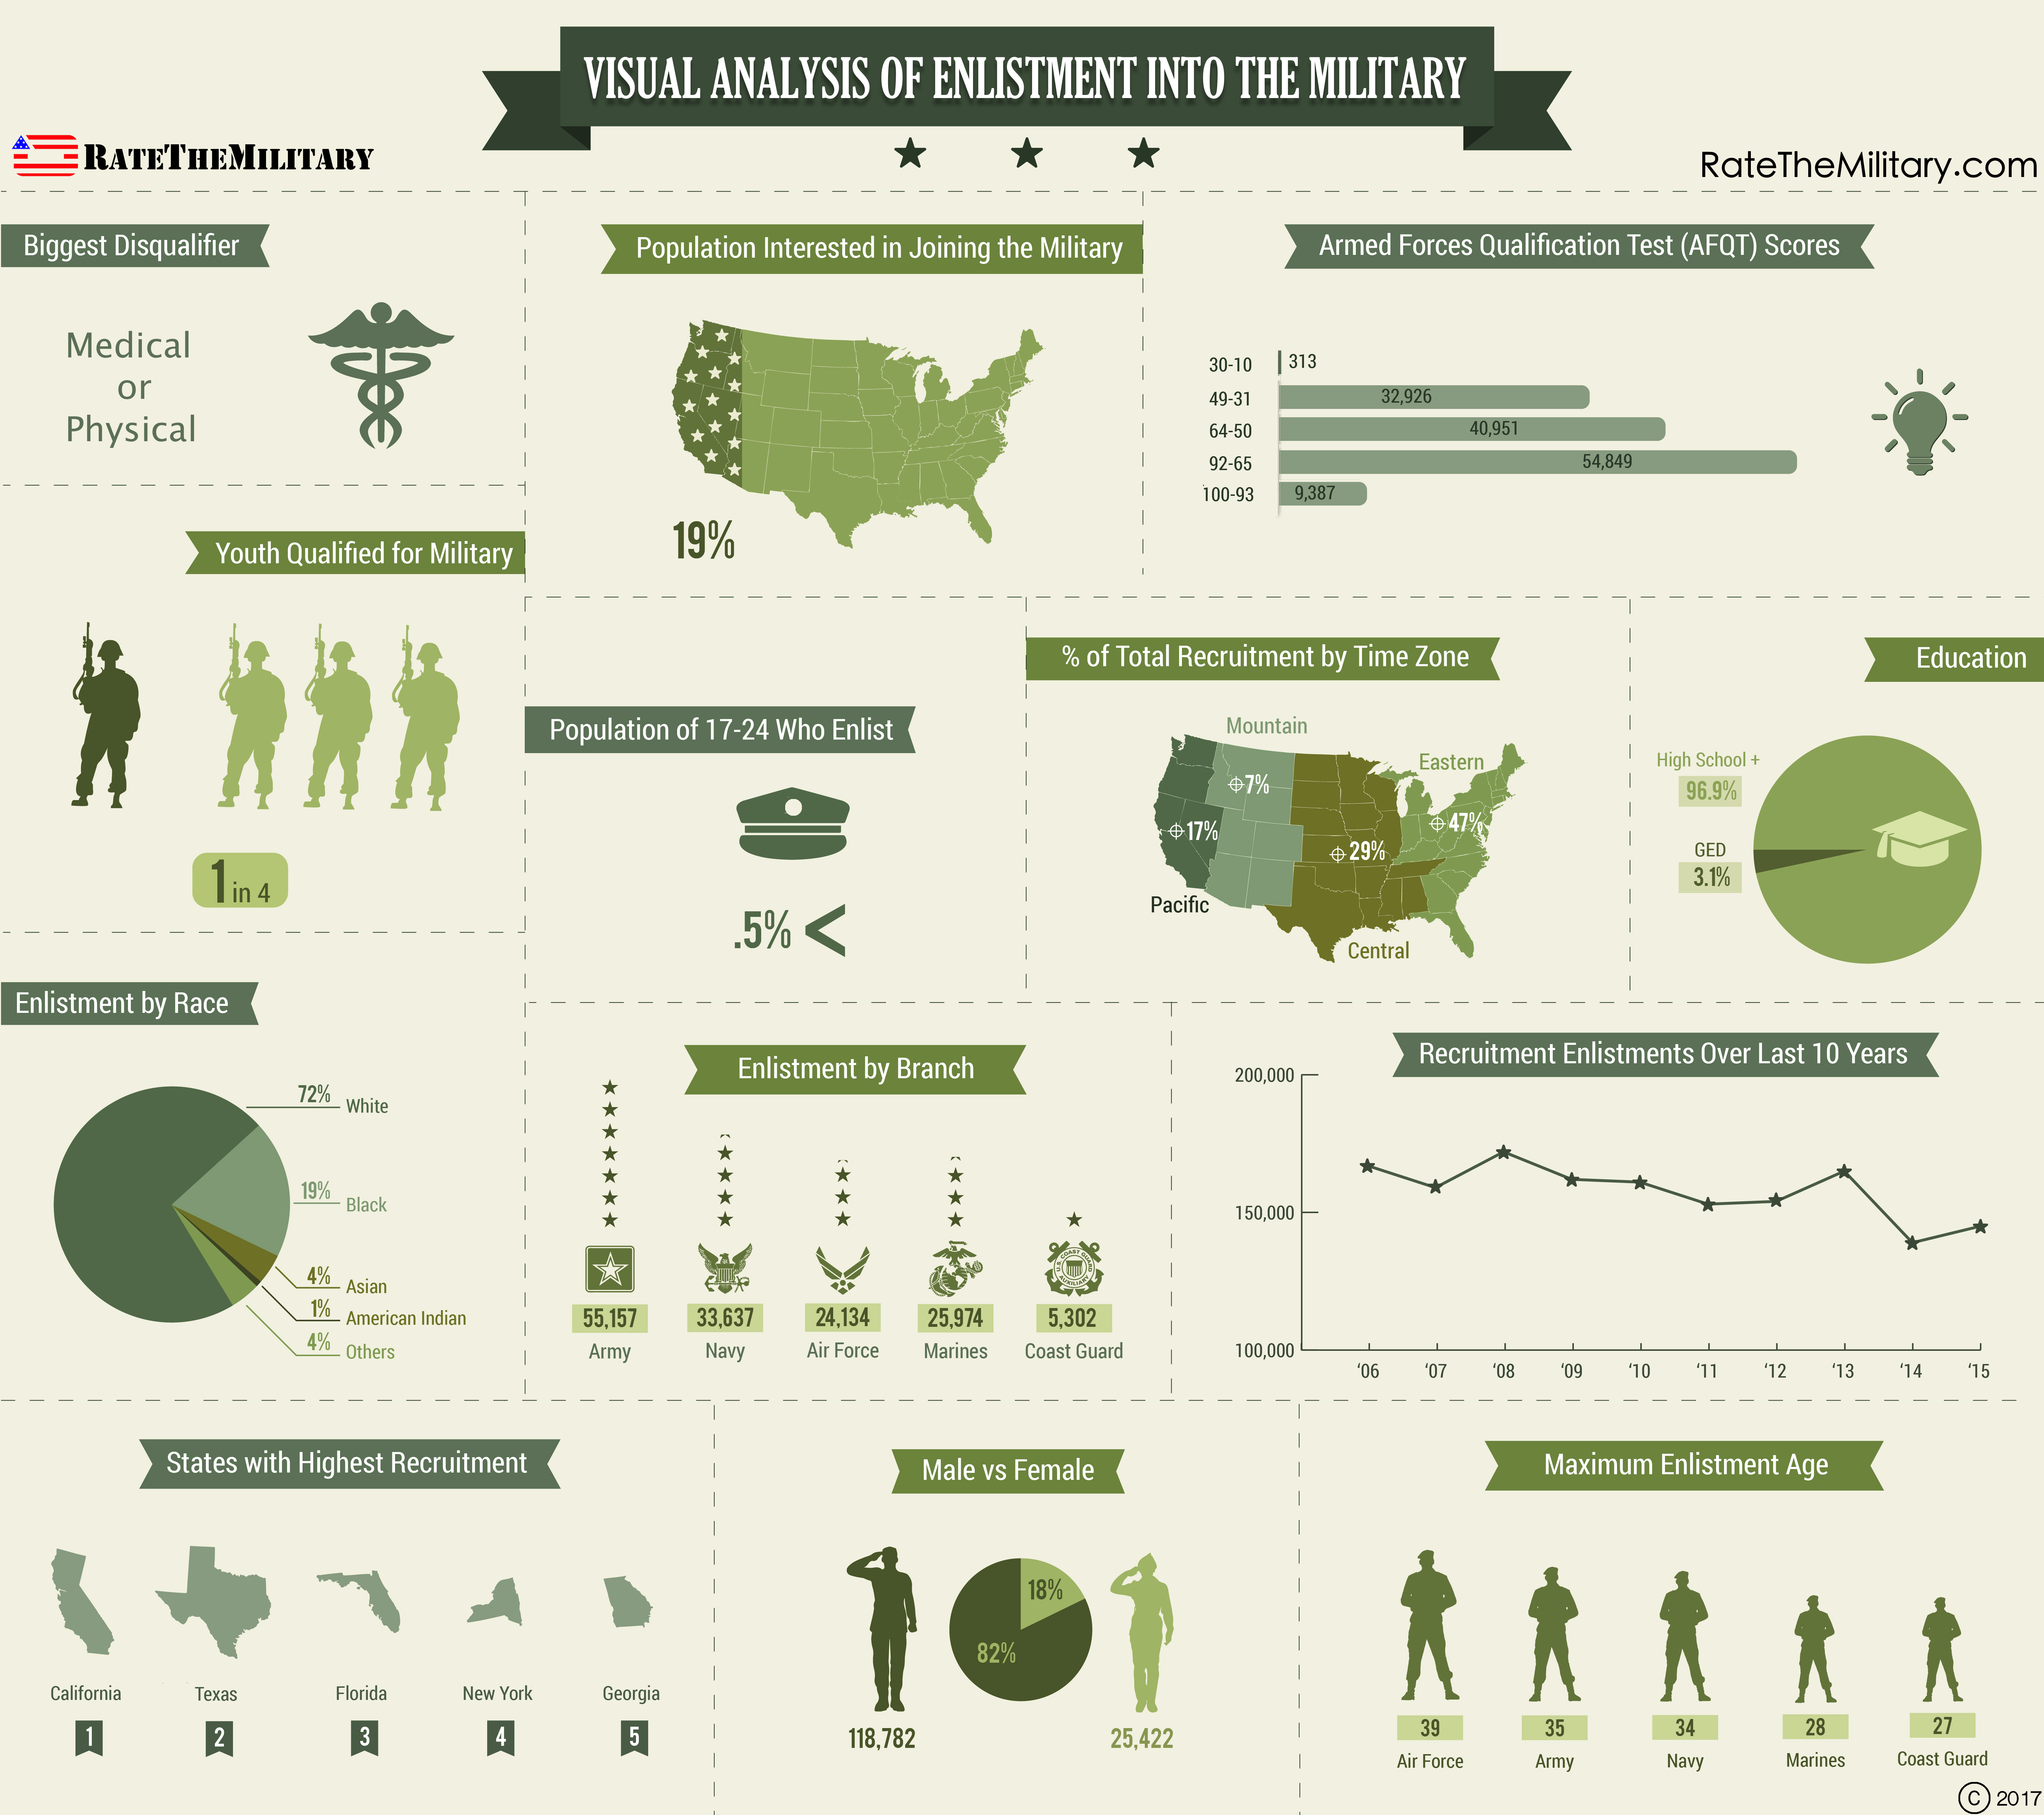 Visual Analysis of Enlistment into the Military